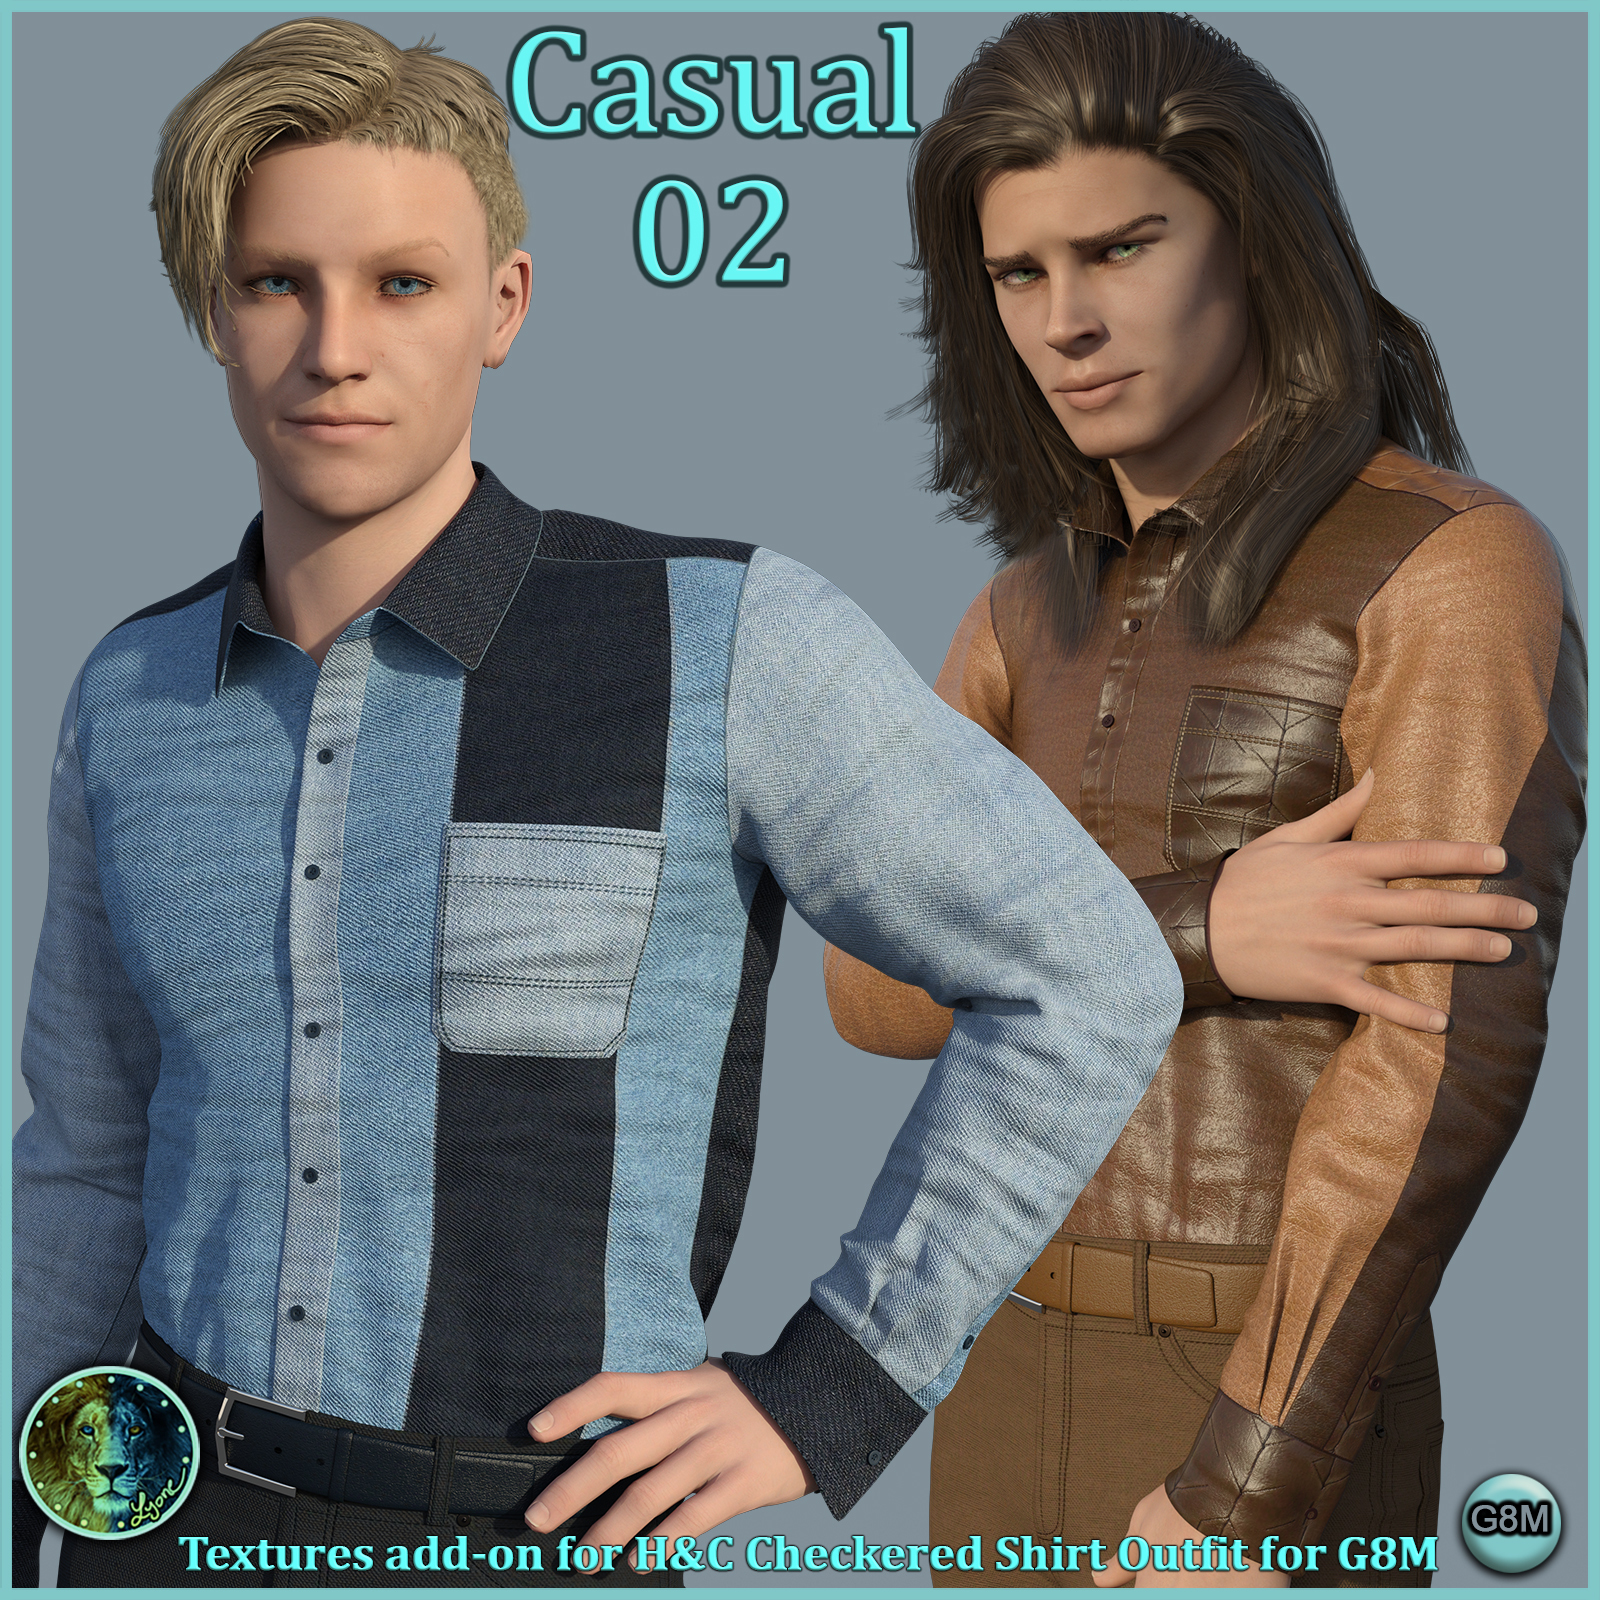 Casual 02 for H and C Checkered Shirt Outfit for G8M